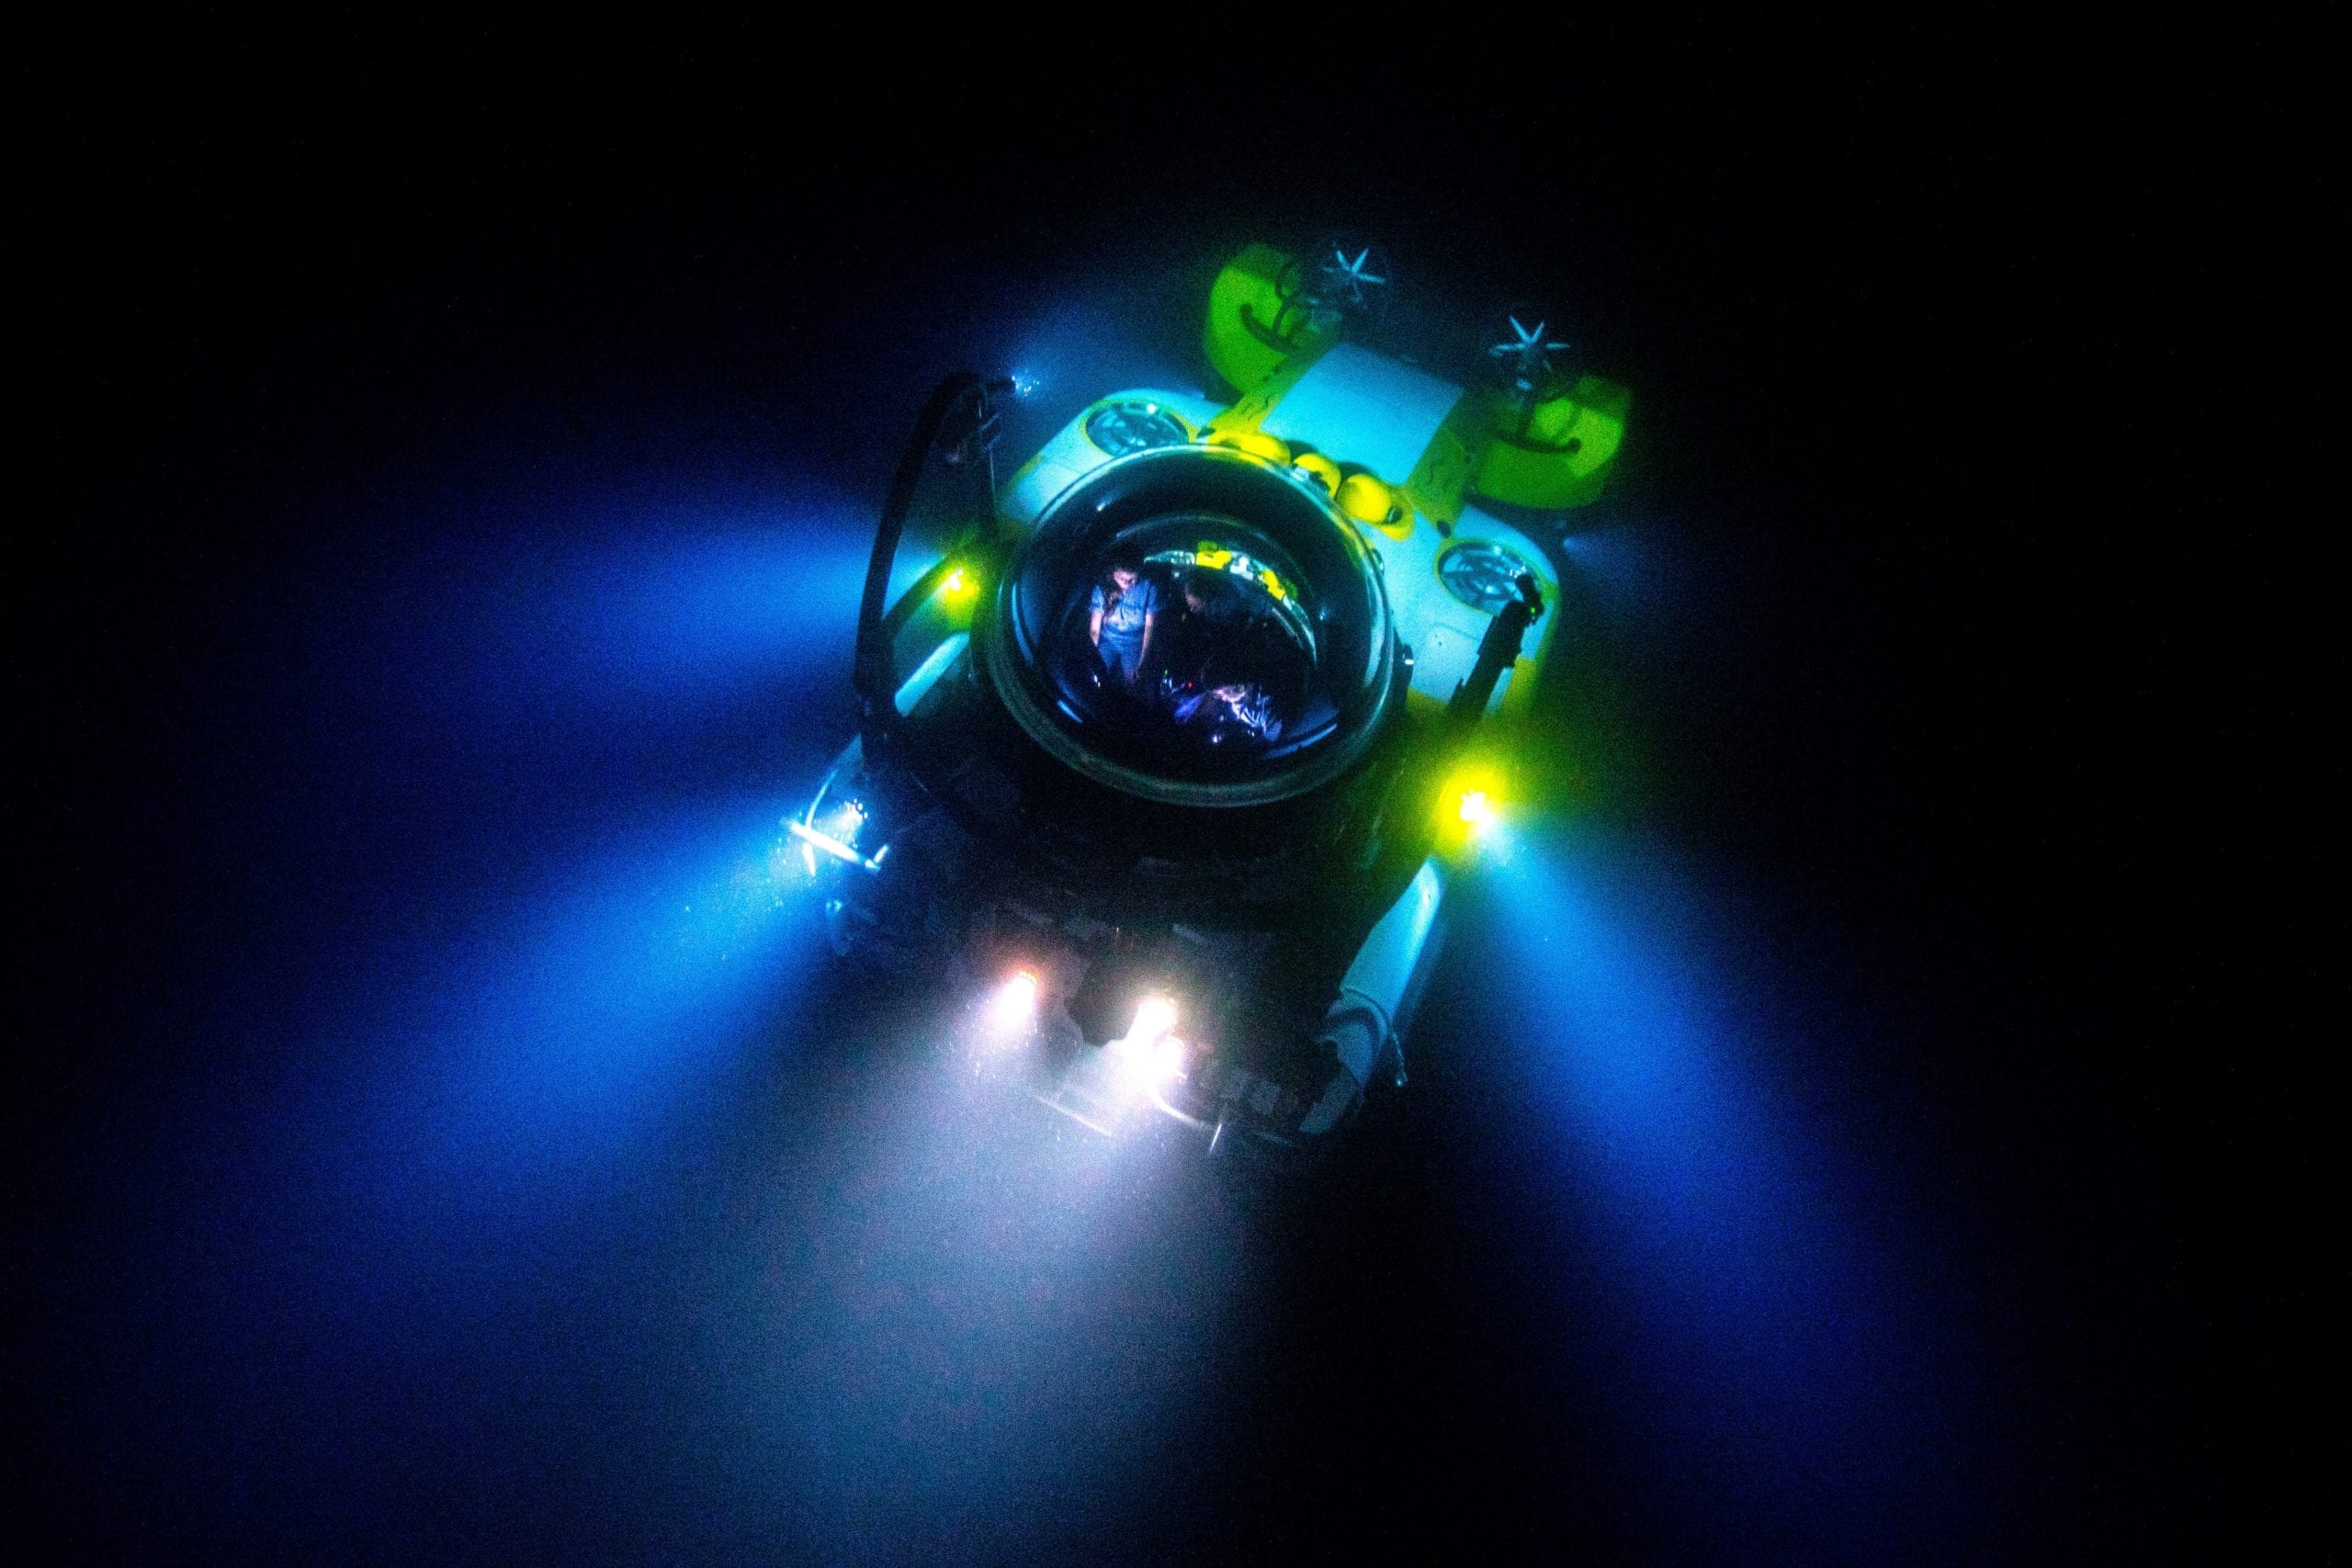 Submarine Deepsee at Night